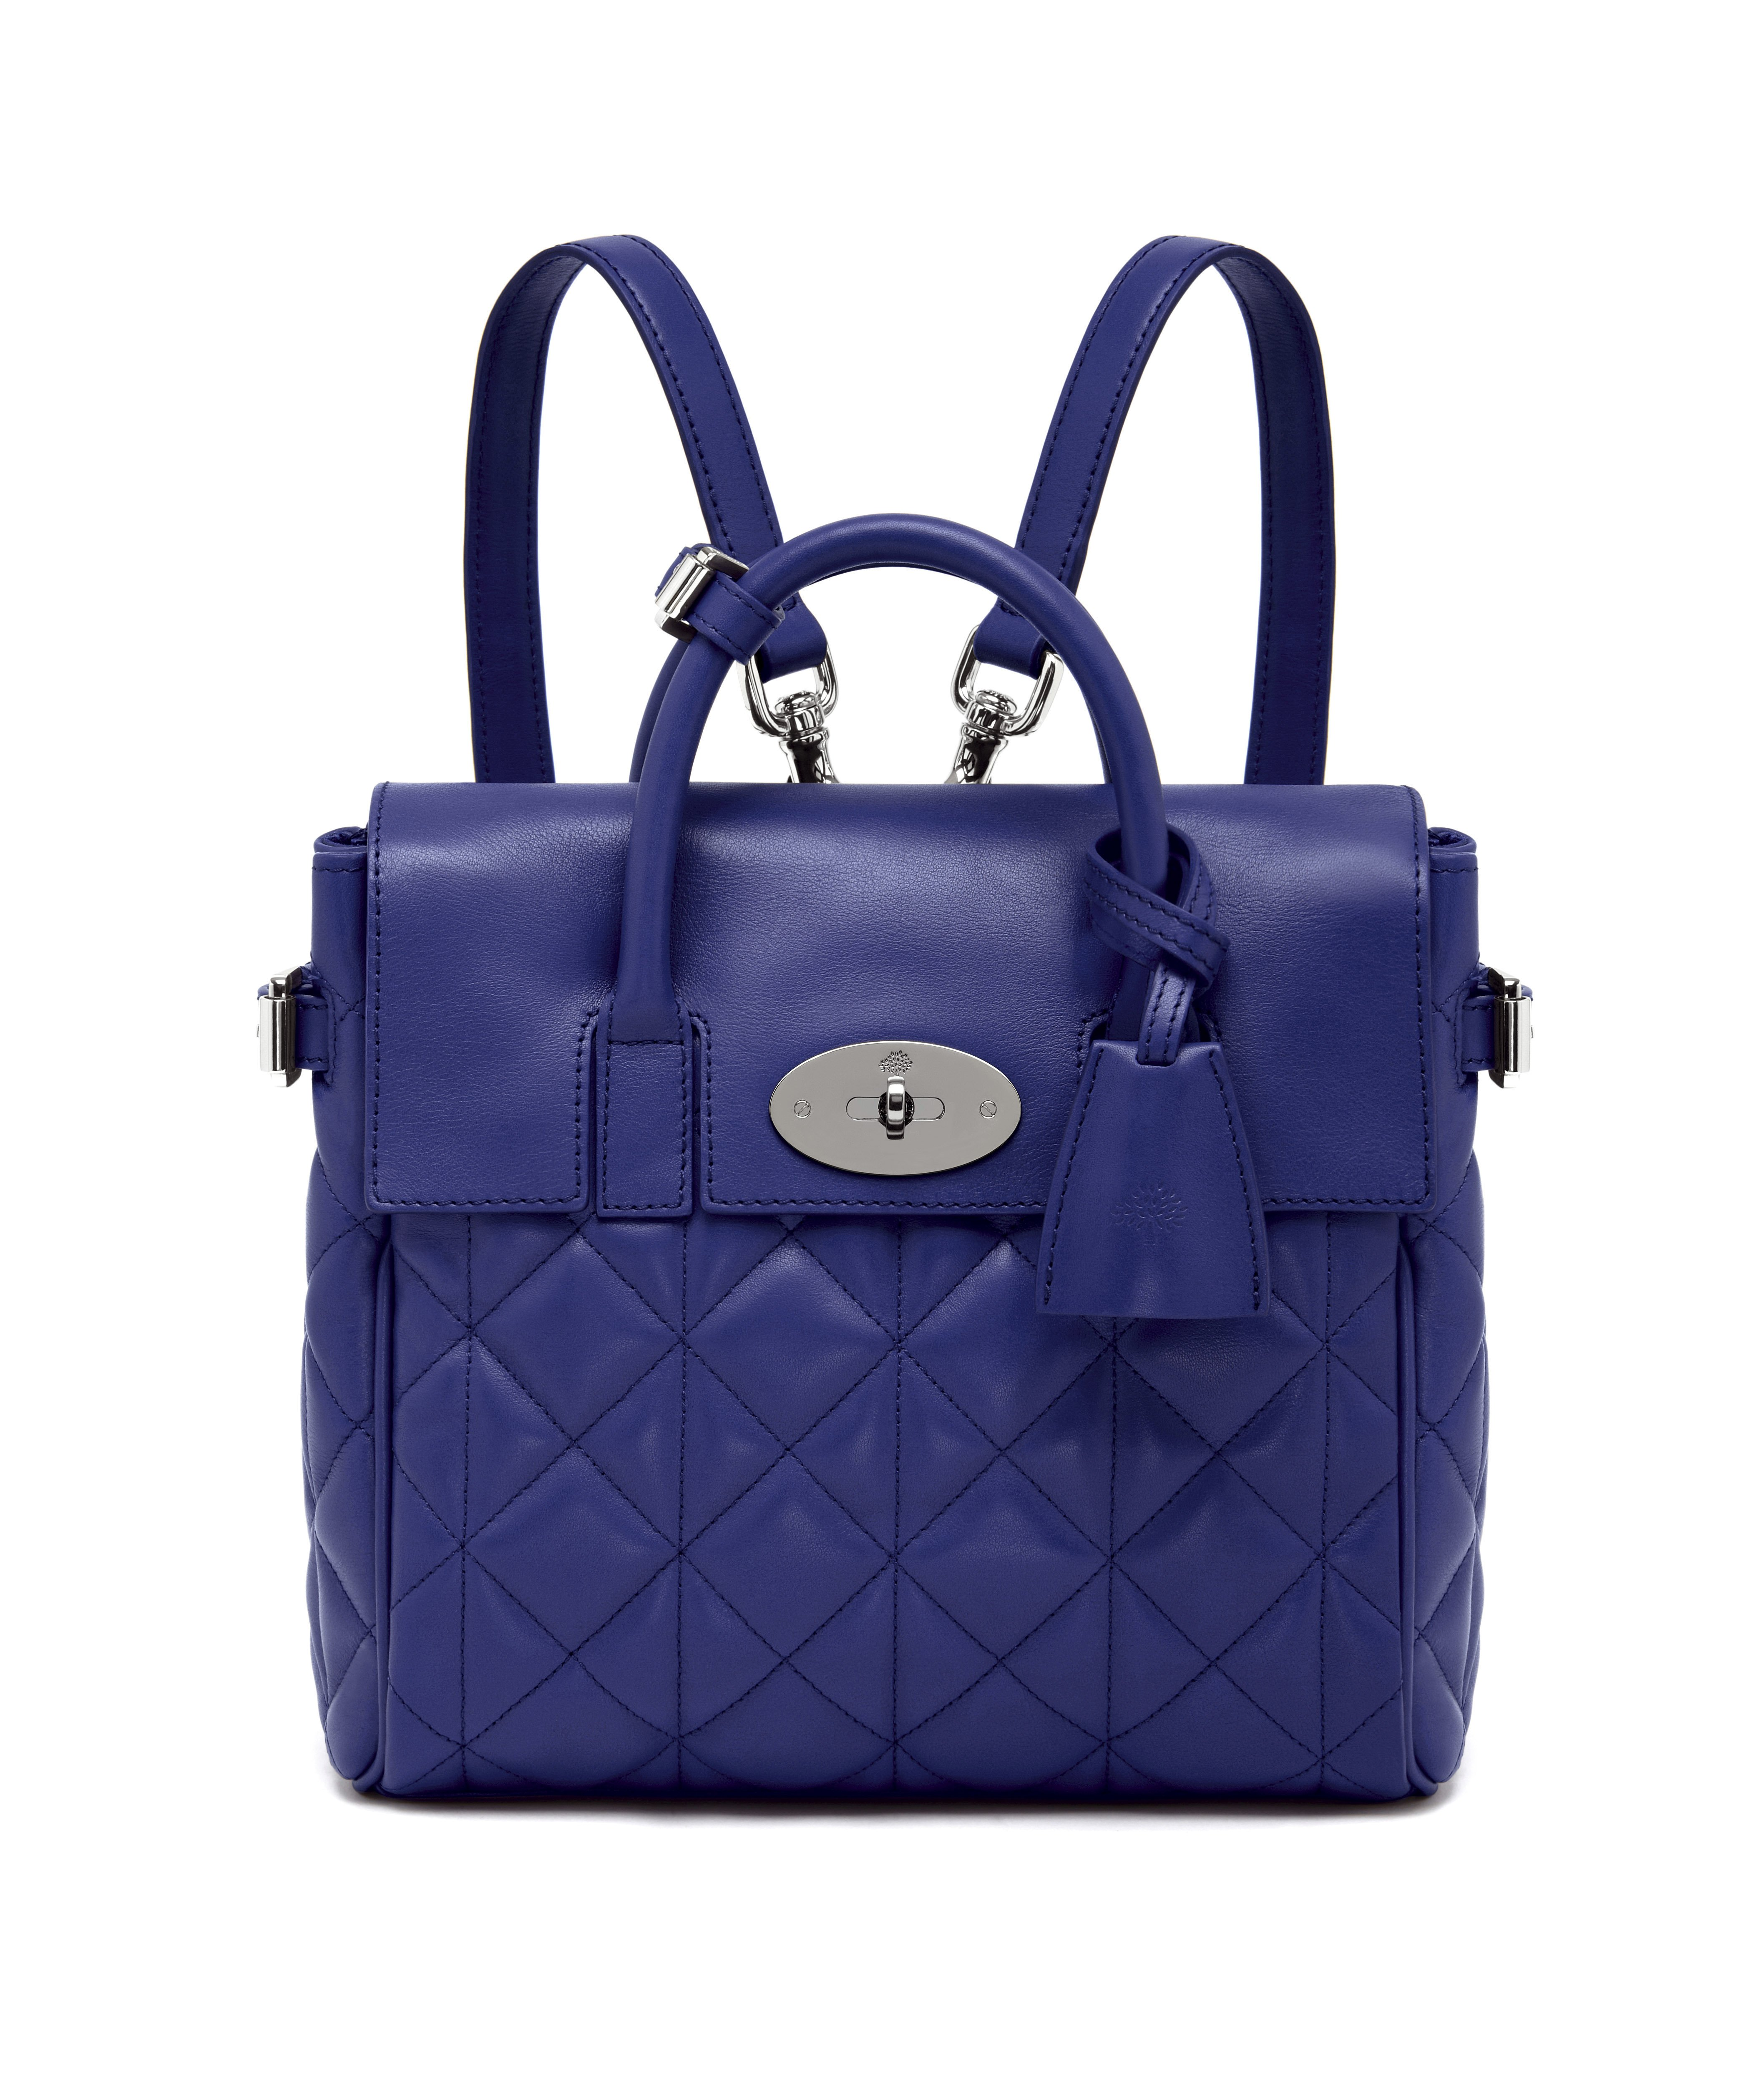 Mini Cara Delevingne Bag in Indigo Quilted Nappa